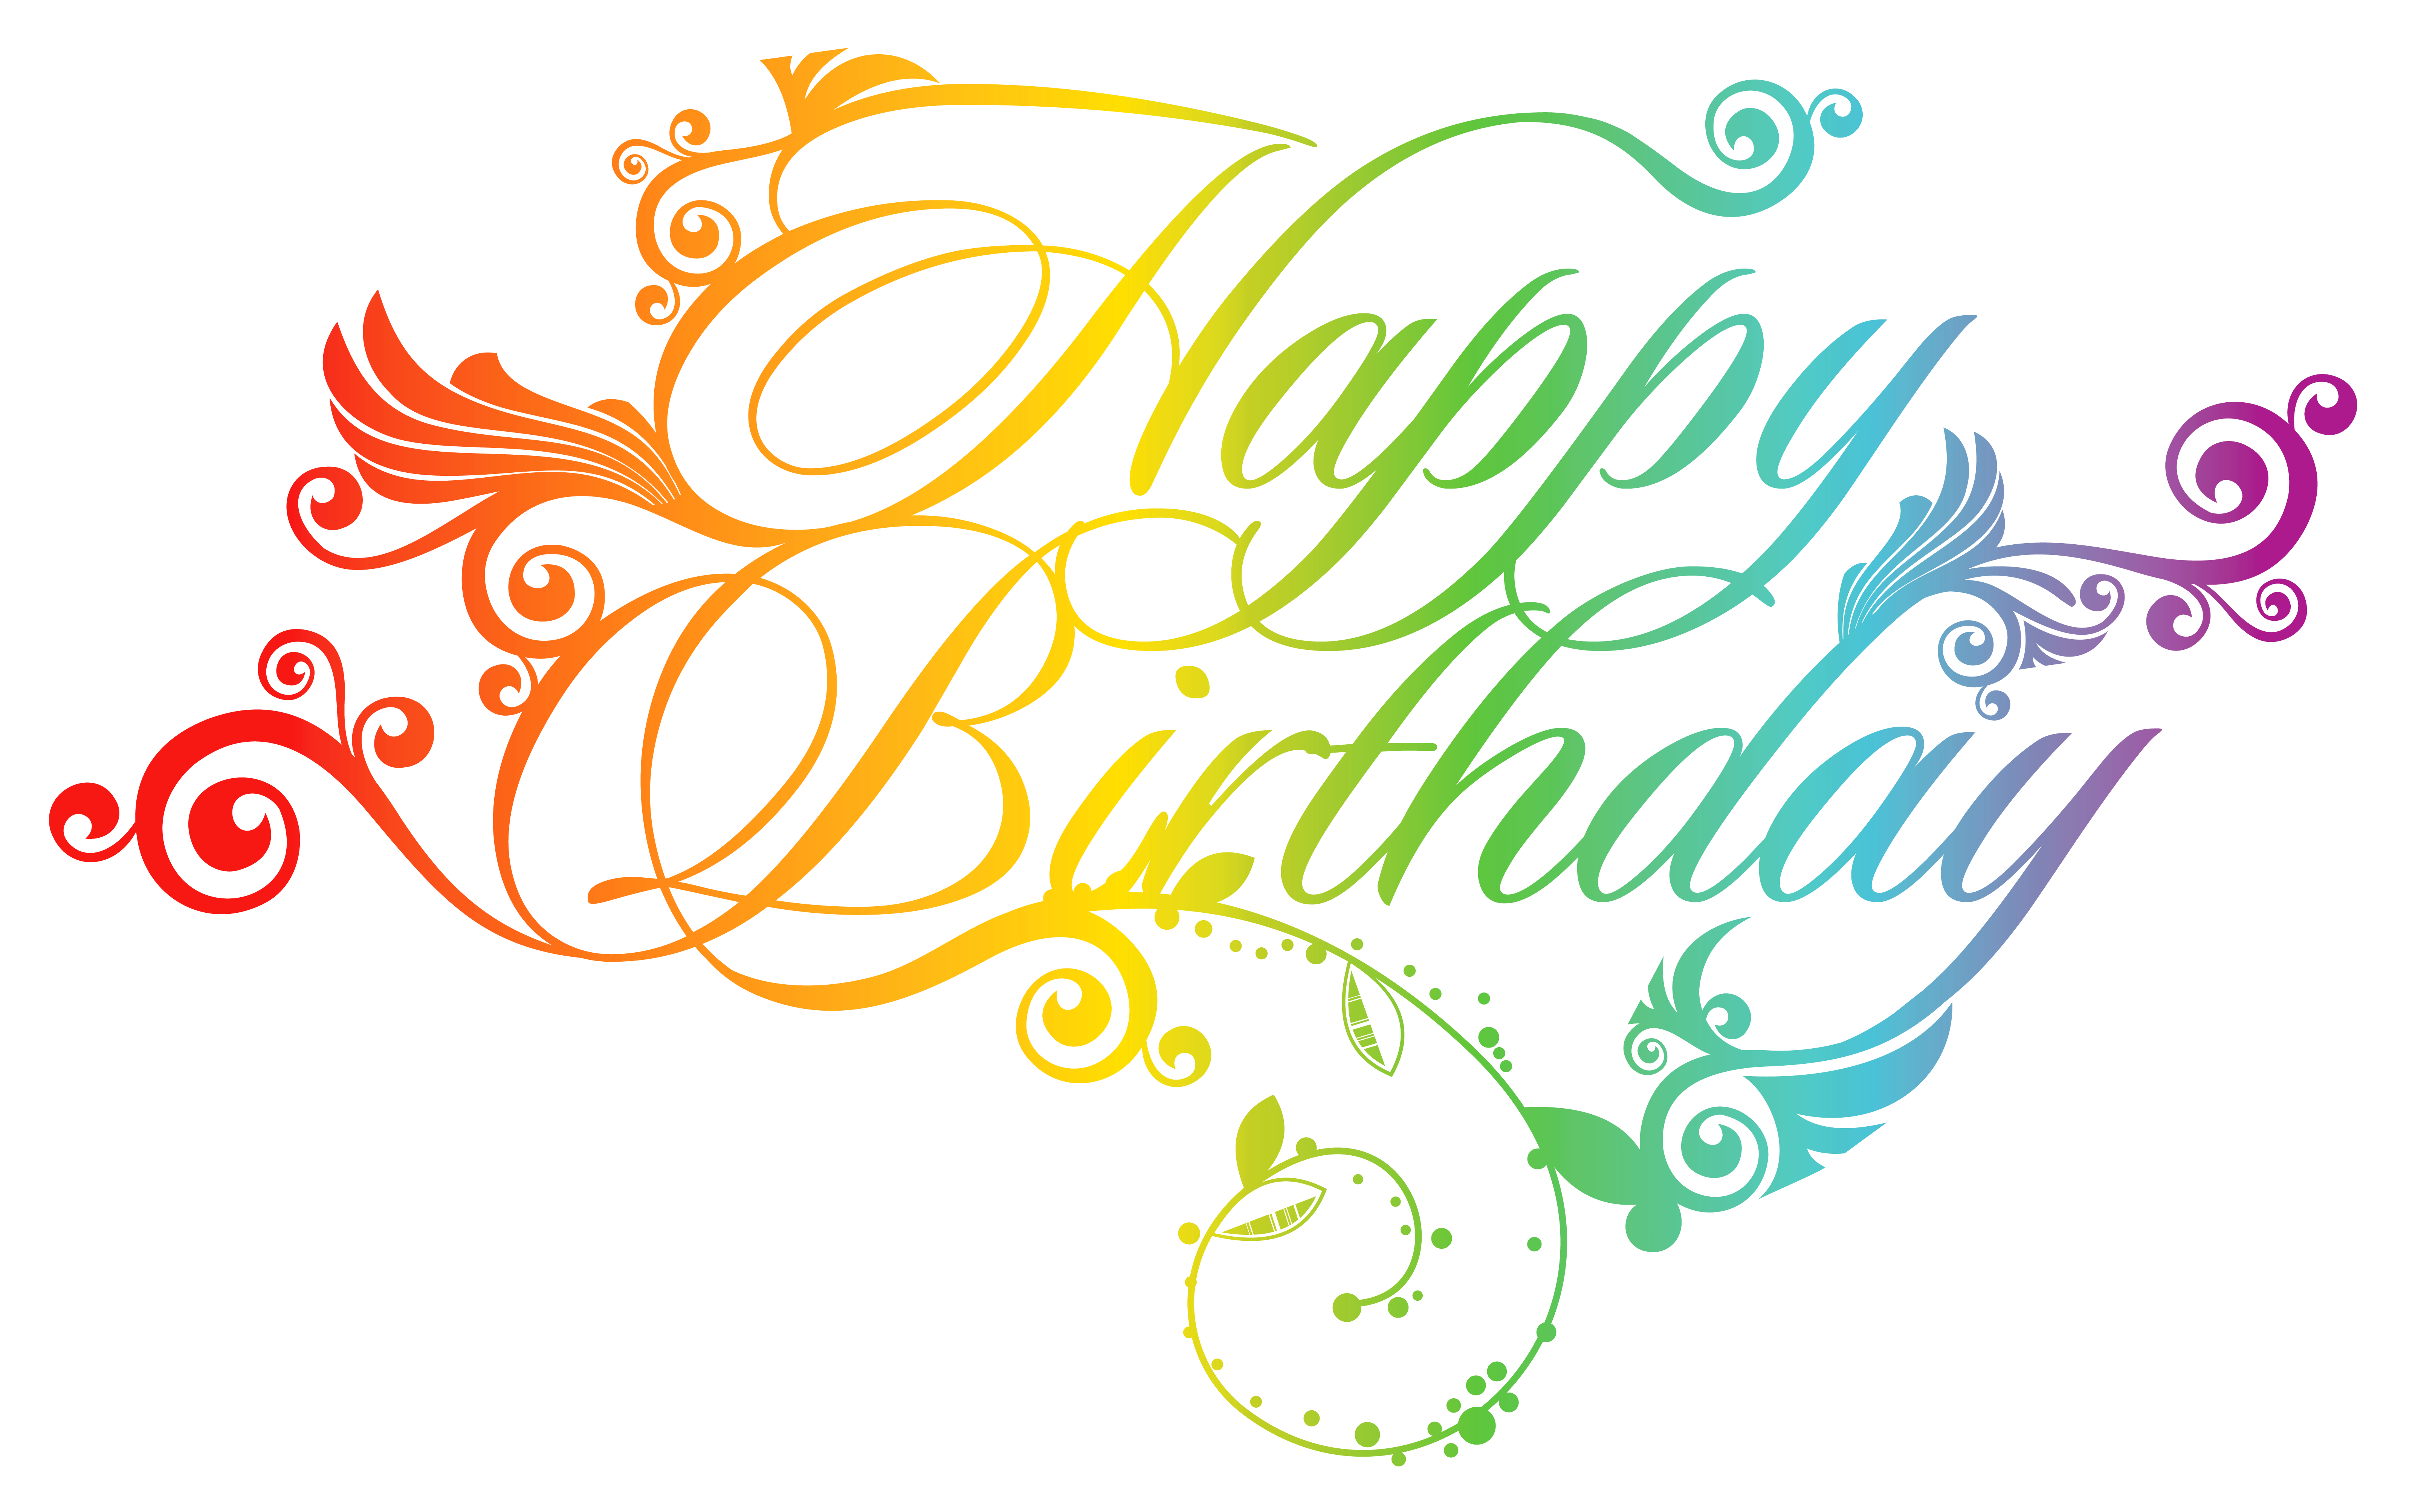 6419x4014 Colorful Happy Birthday Png Clipart Pictureu200b Gallery